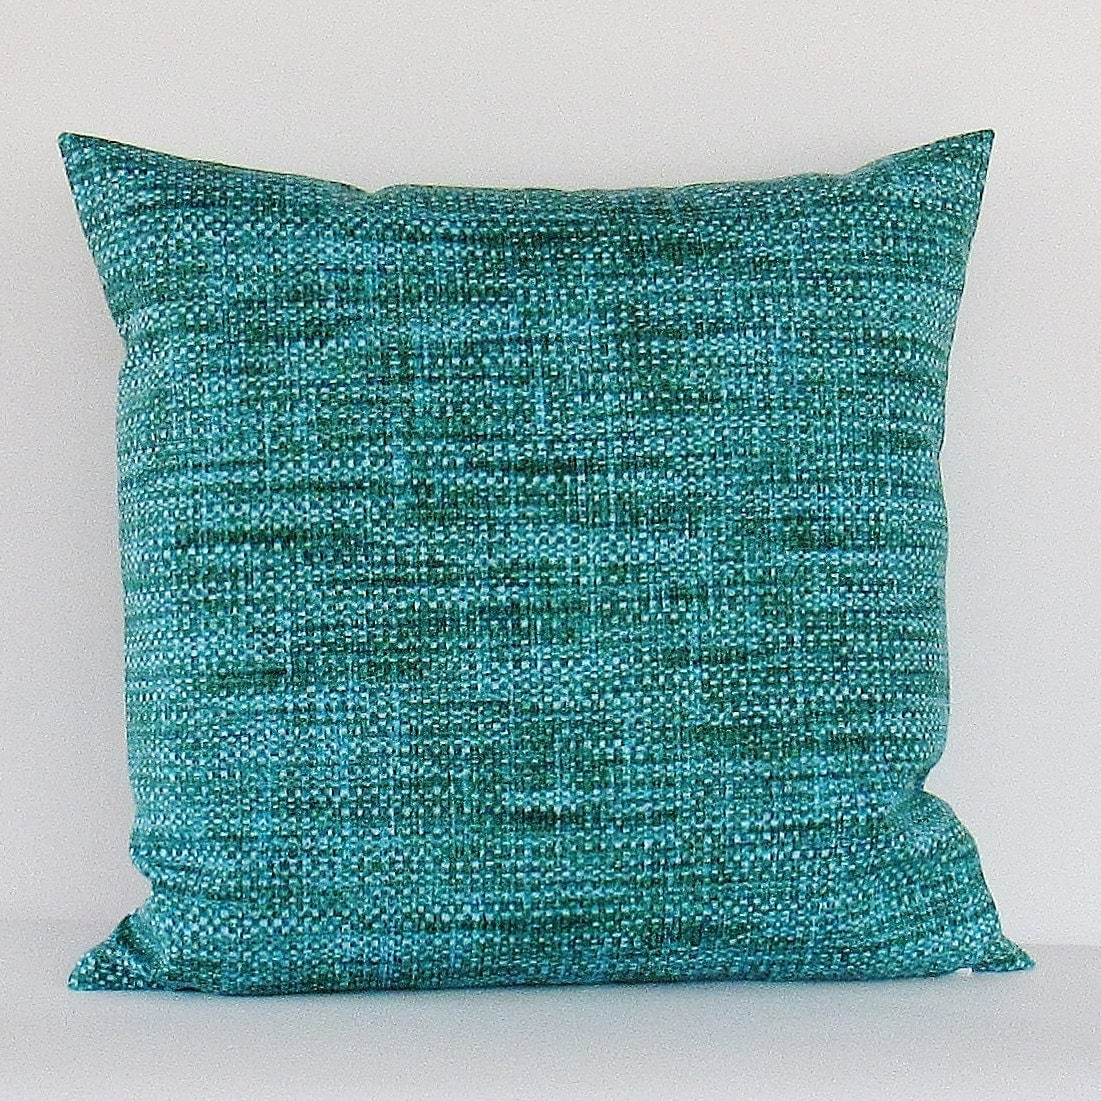 Teal Turquoise Outdoor Pillow Cover Decorative Throw Accent